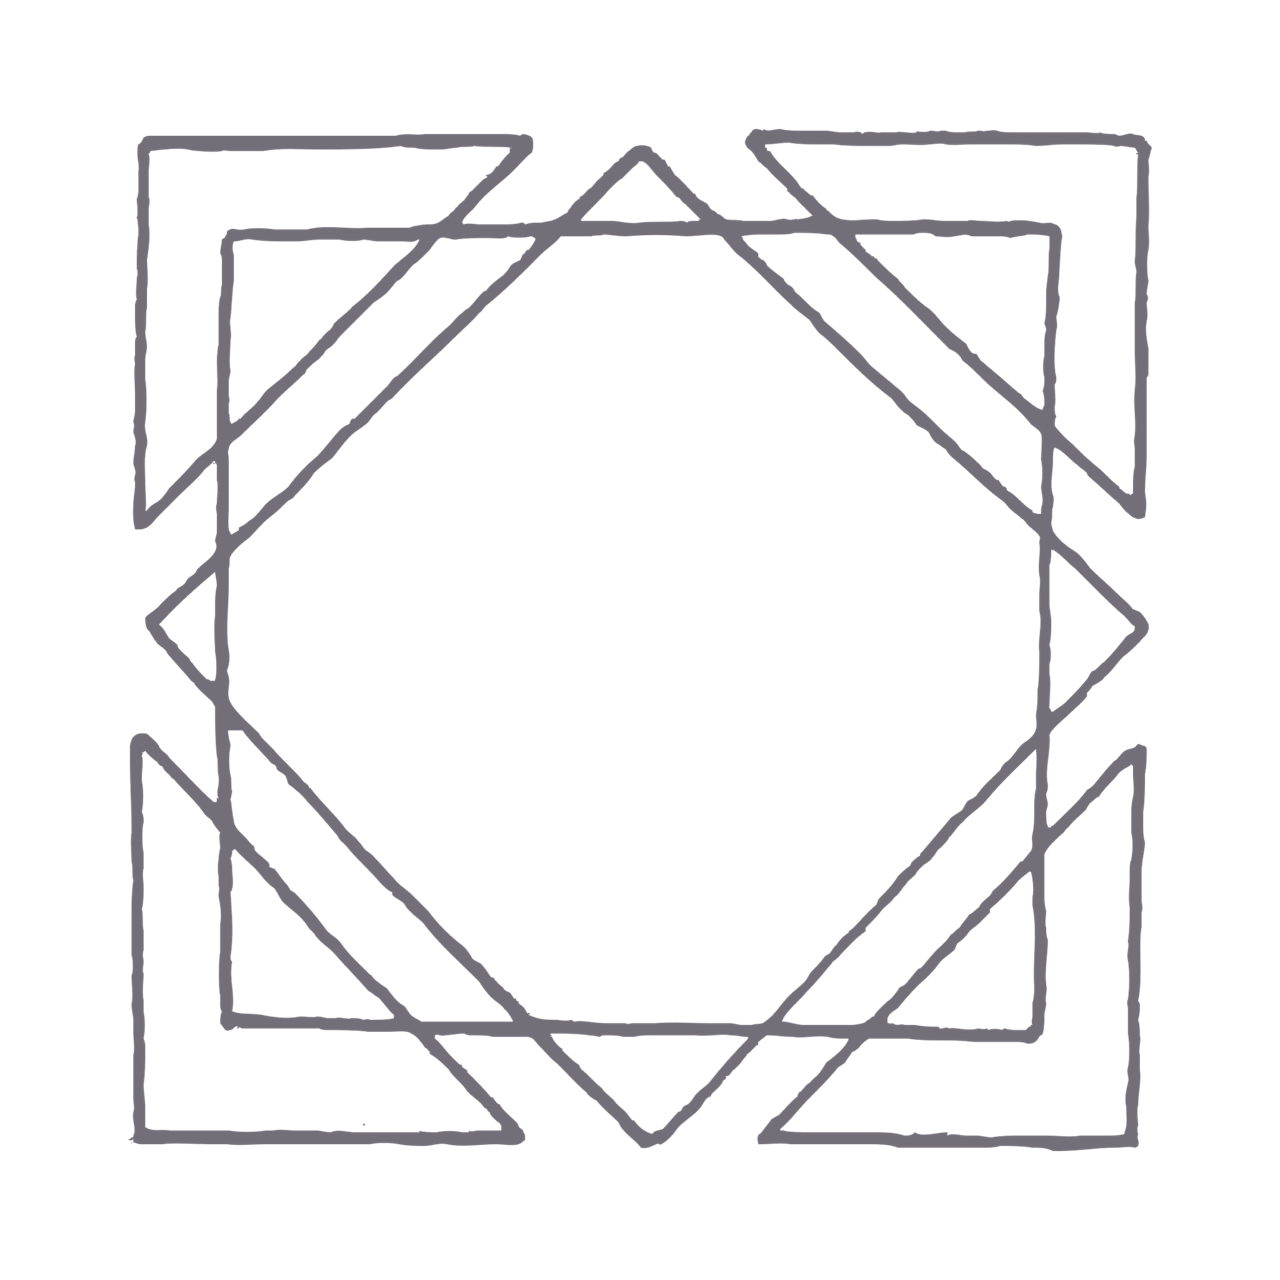 Legacy Social Marketing